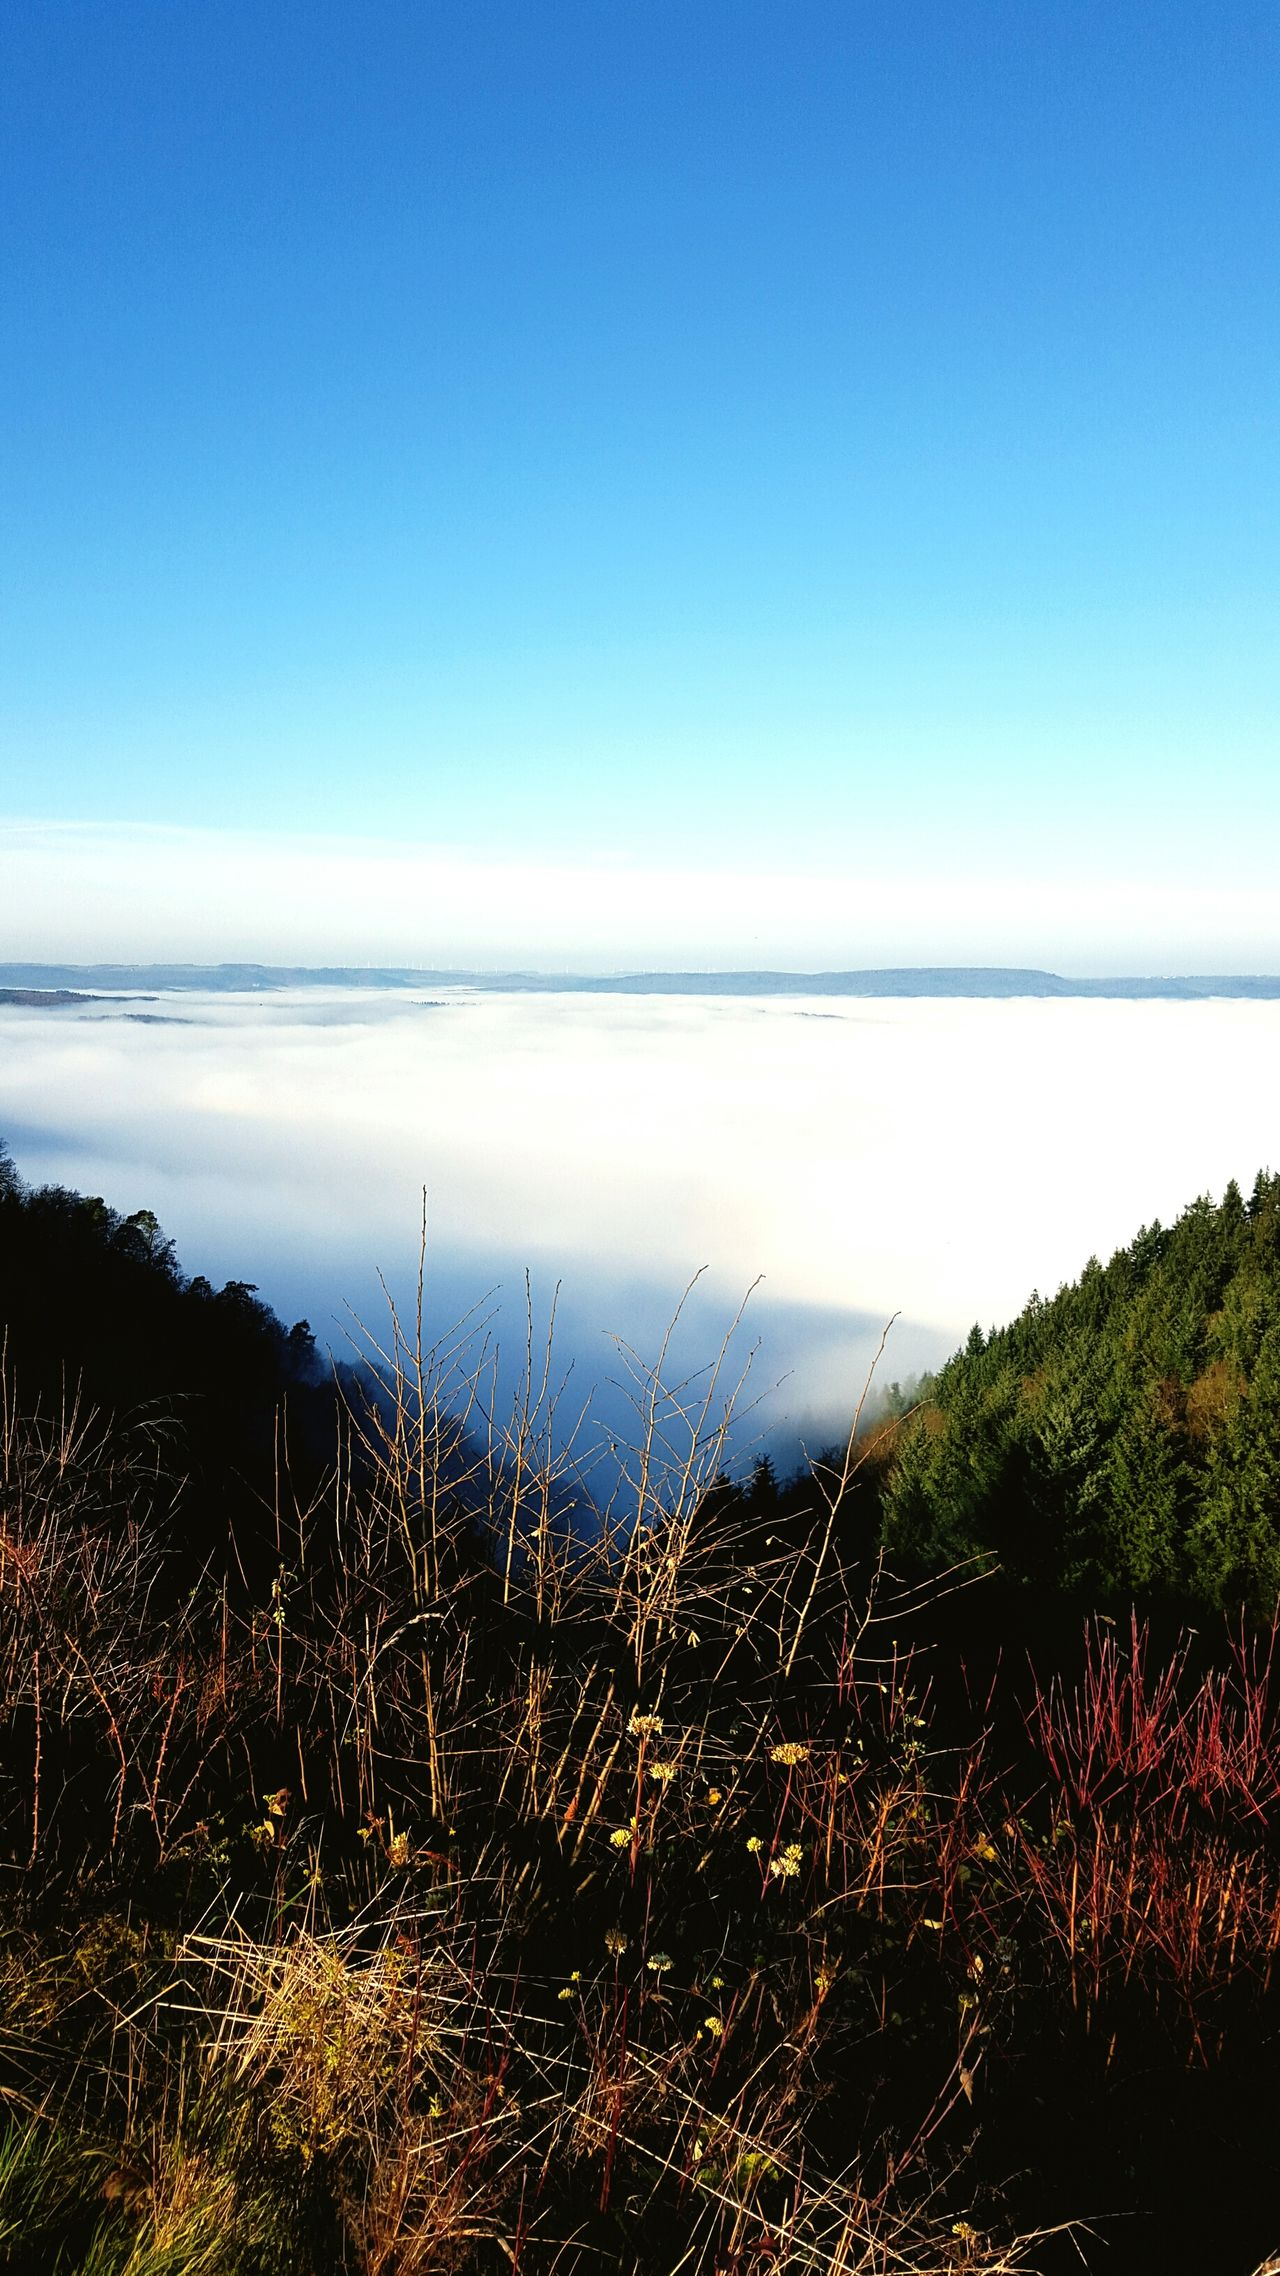 Seaofclouds Lakeofclouds Seaoffog Fog Foggy Foggy Morning Fall Fall Beauty Fall_collection